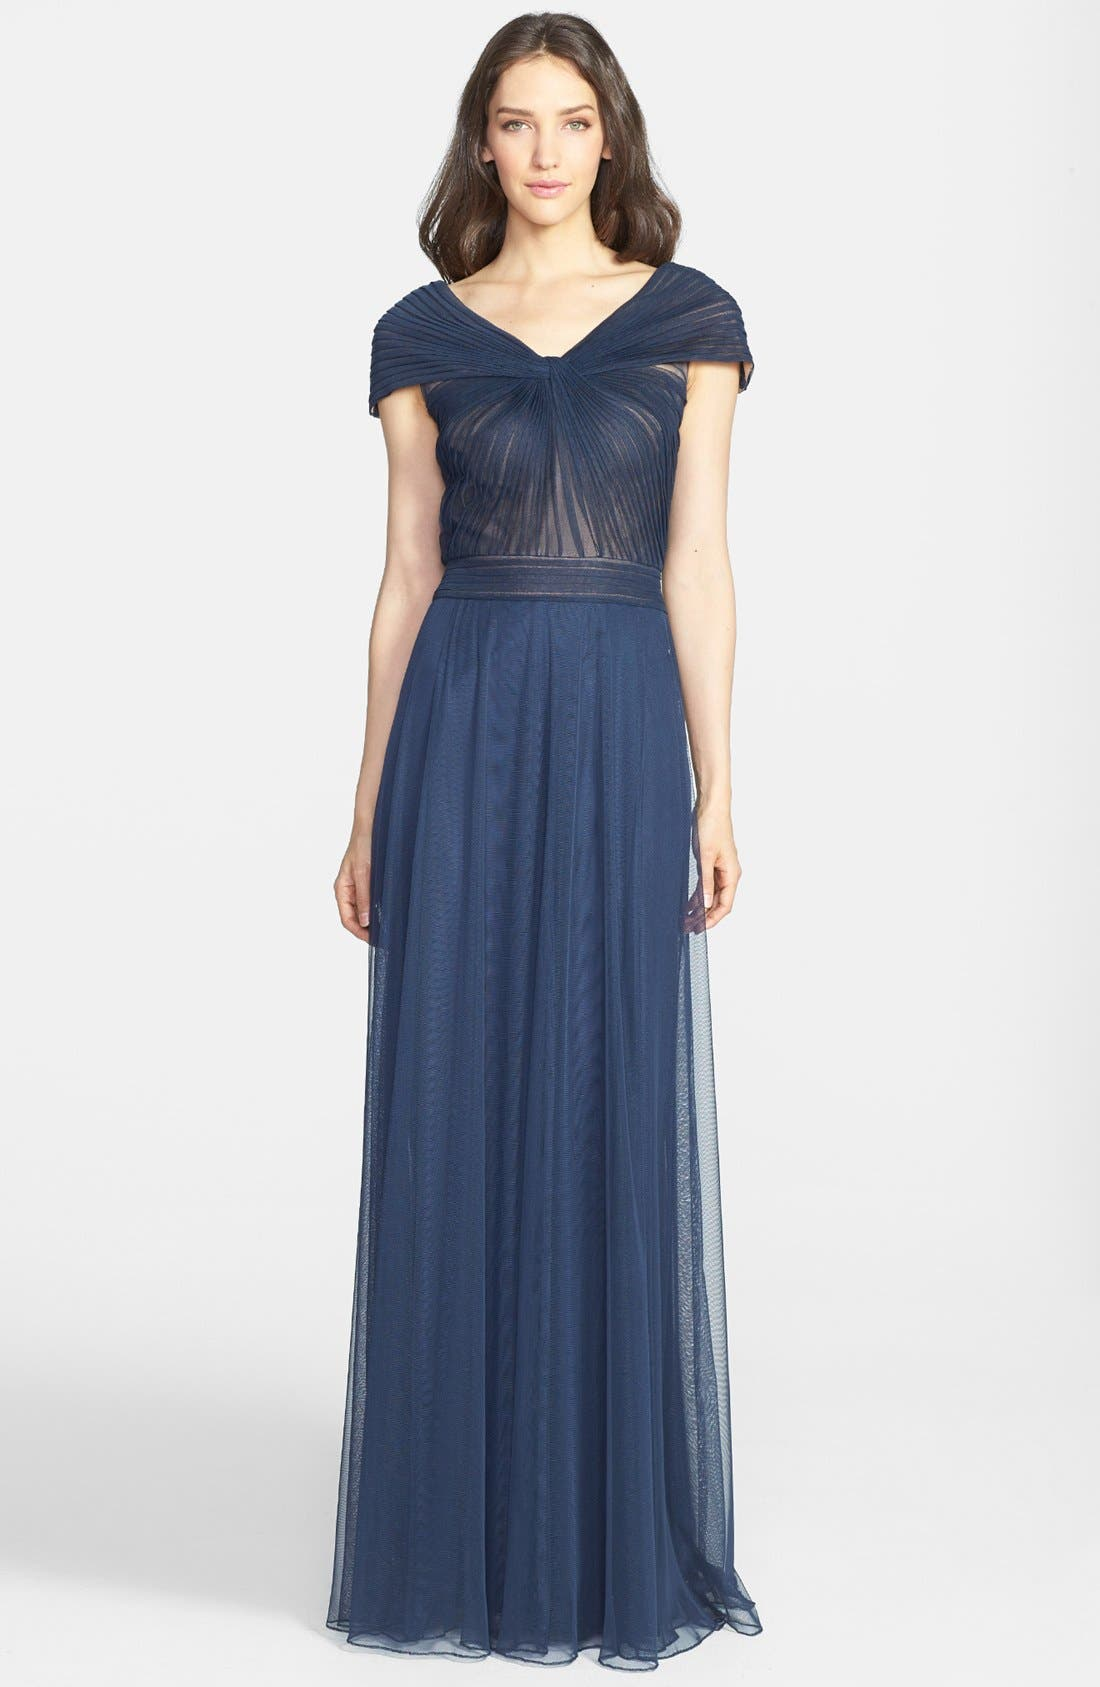 Alternate Image 1 Selected - Tadashi Shoji Portrait Collar Pleated Mesh Gown (Regular & Petite)